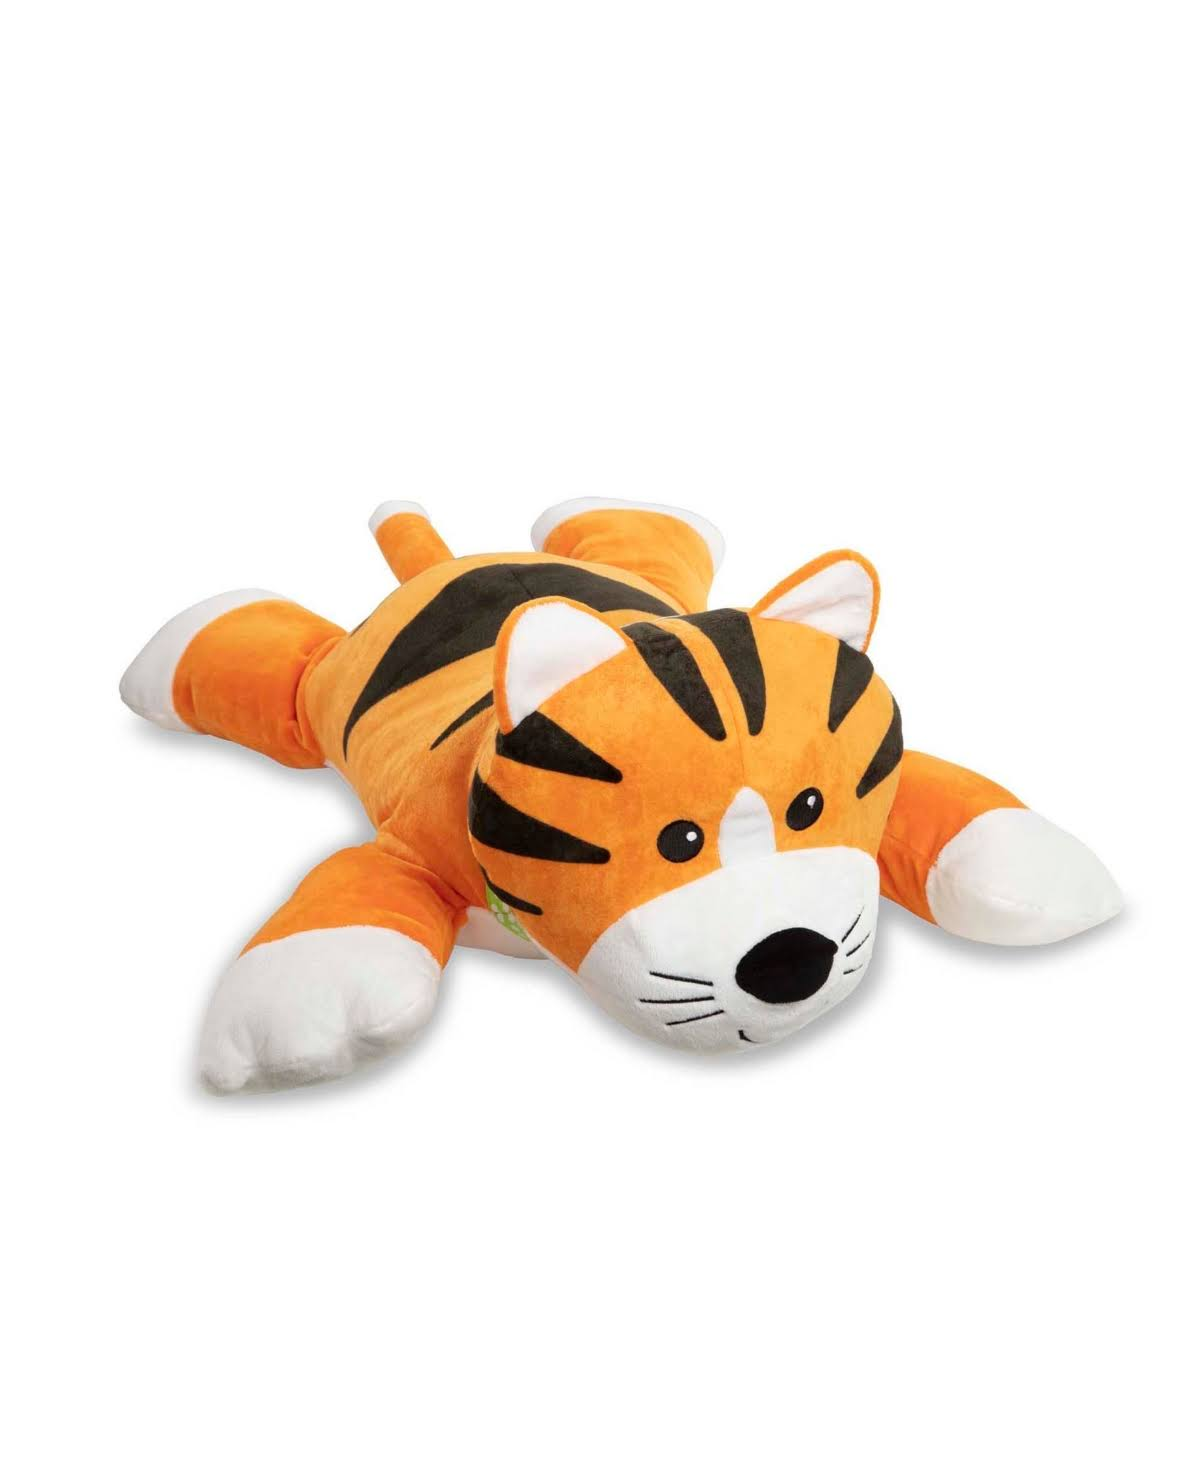 Melissa & Doug - Cuddle Tiger Jumbo Plush Stuffed Animal